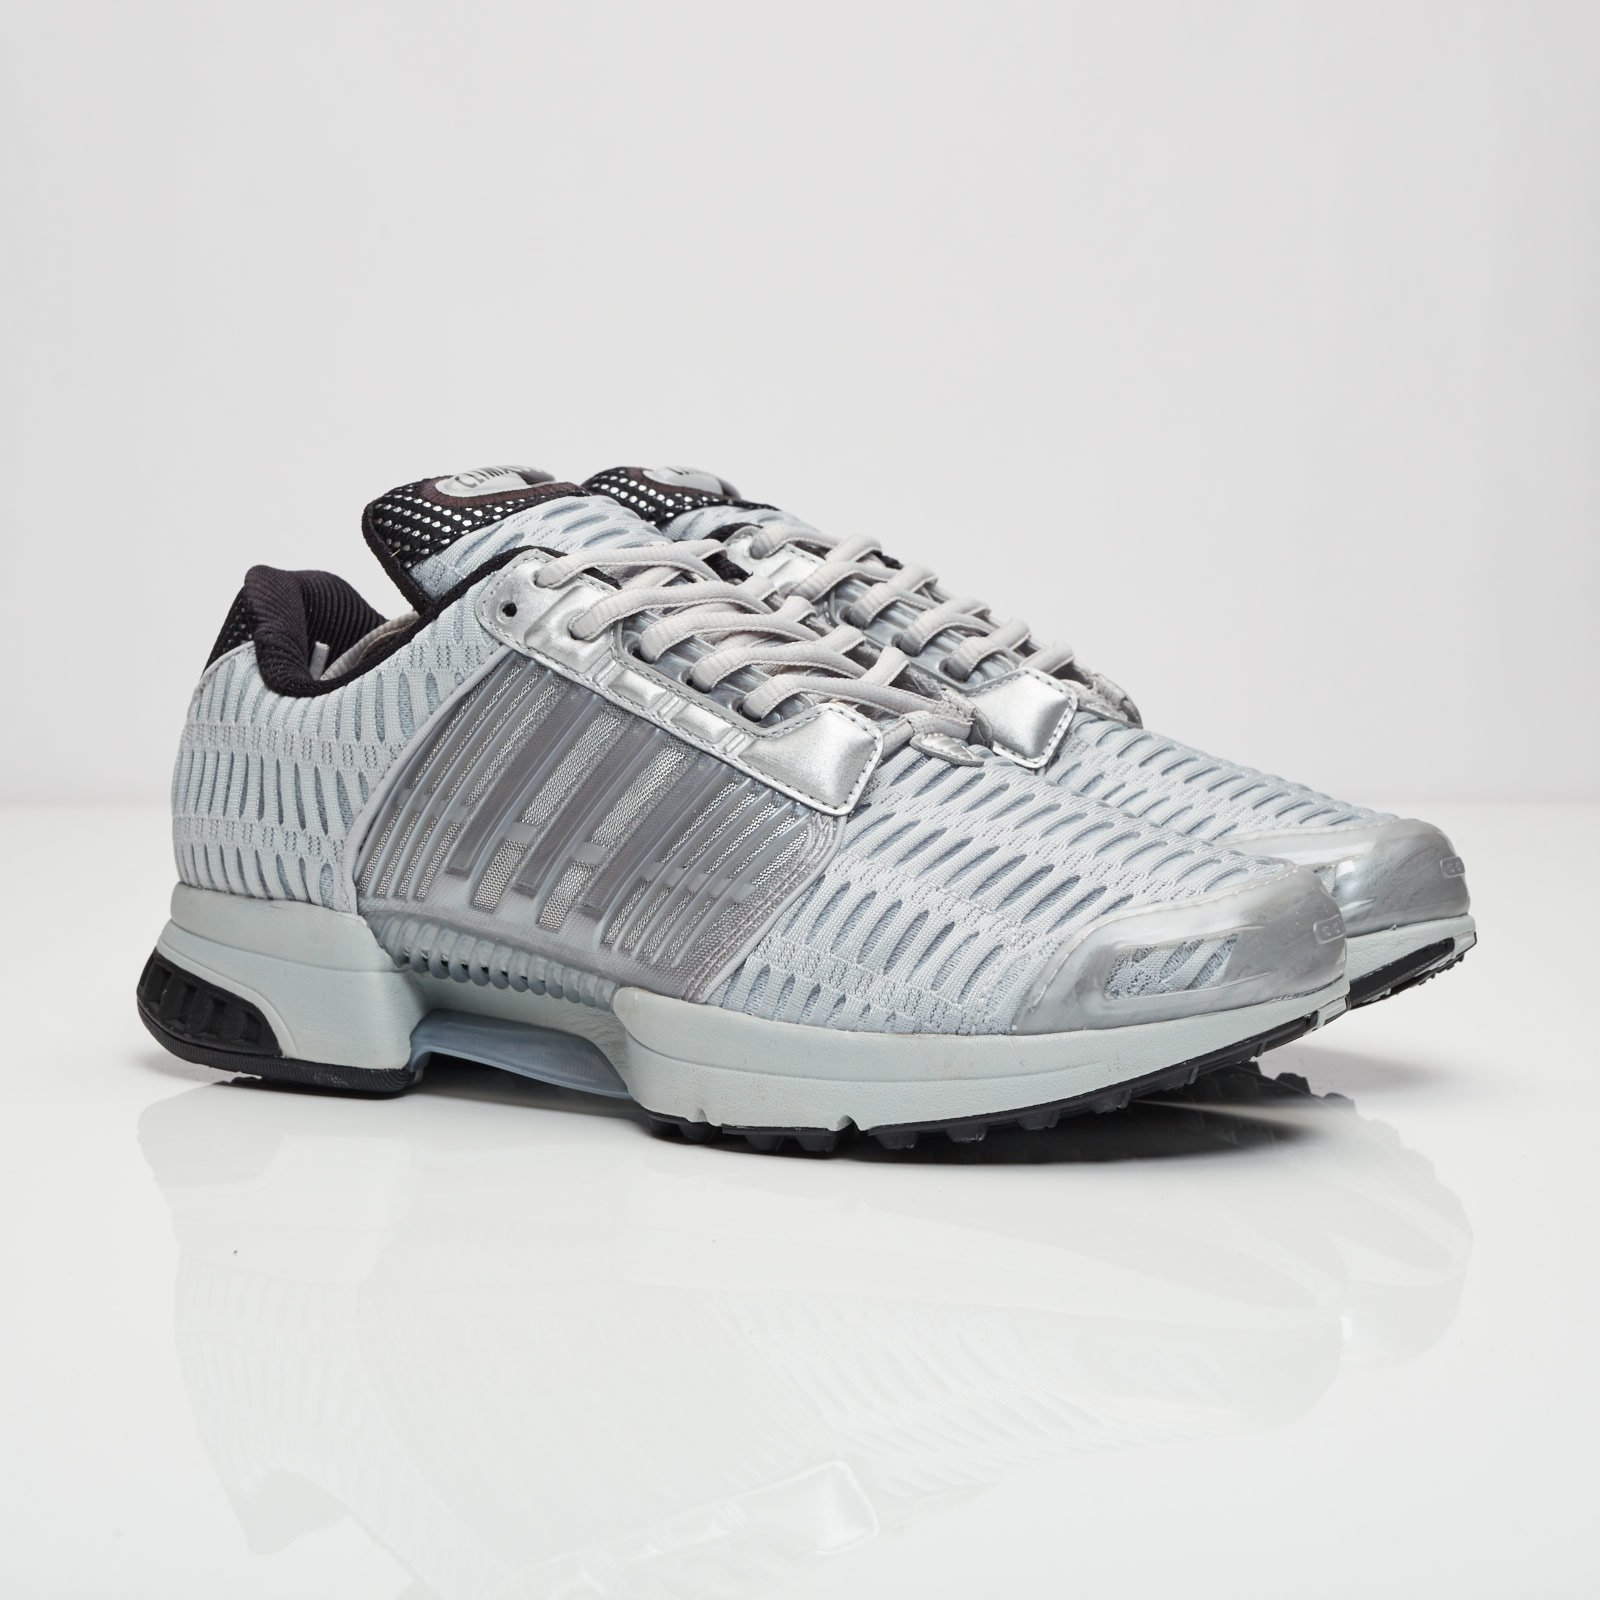 Adidas clima Cool 1 ba8570 sneakersnstuff Sneakers